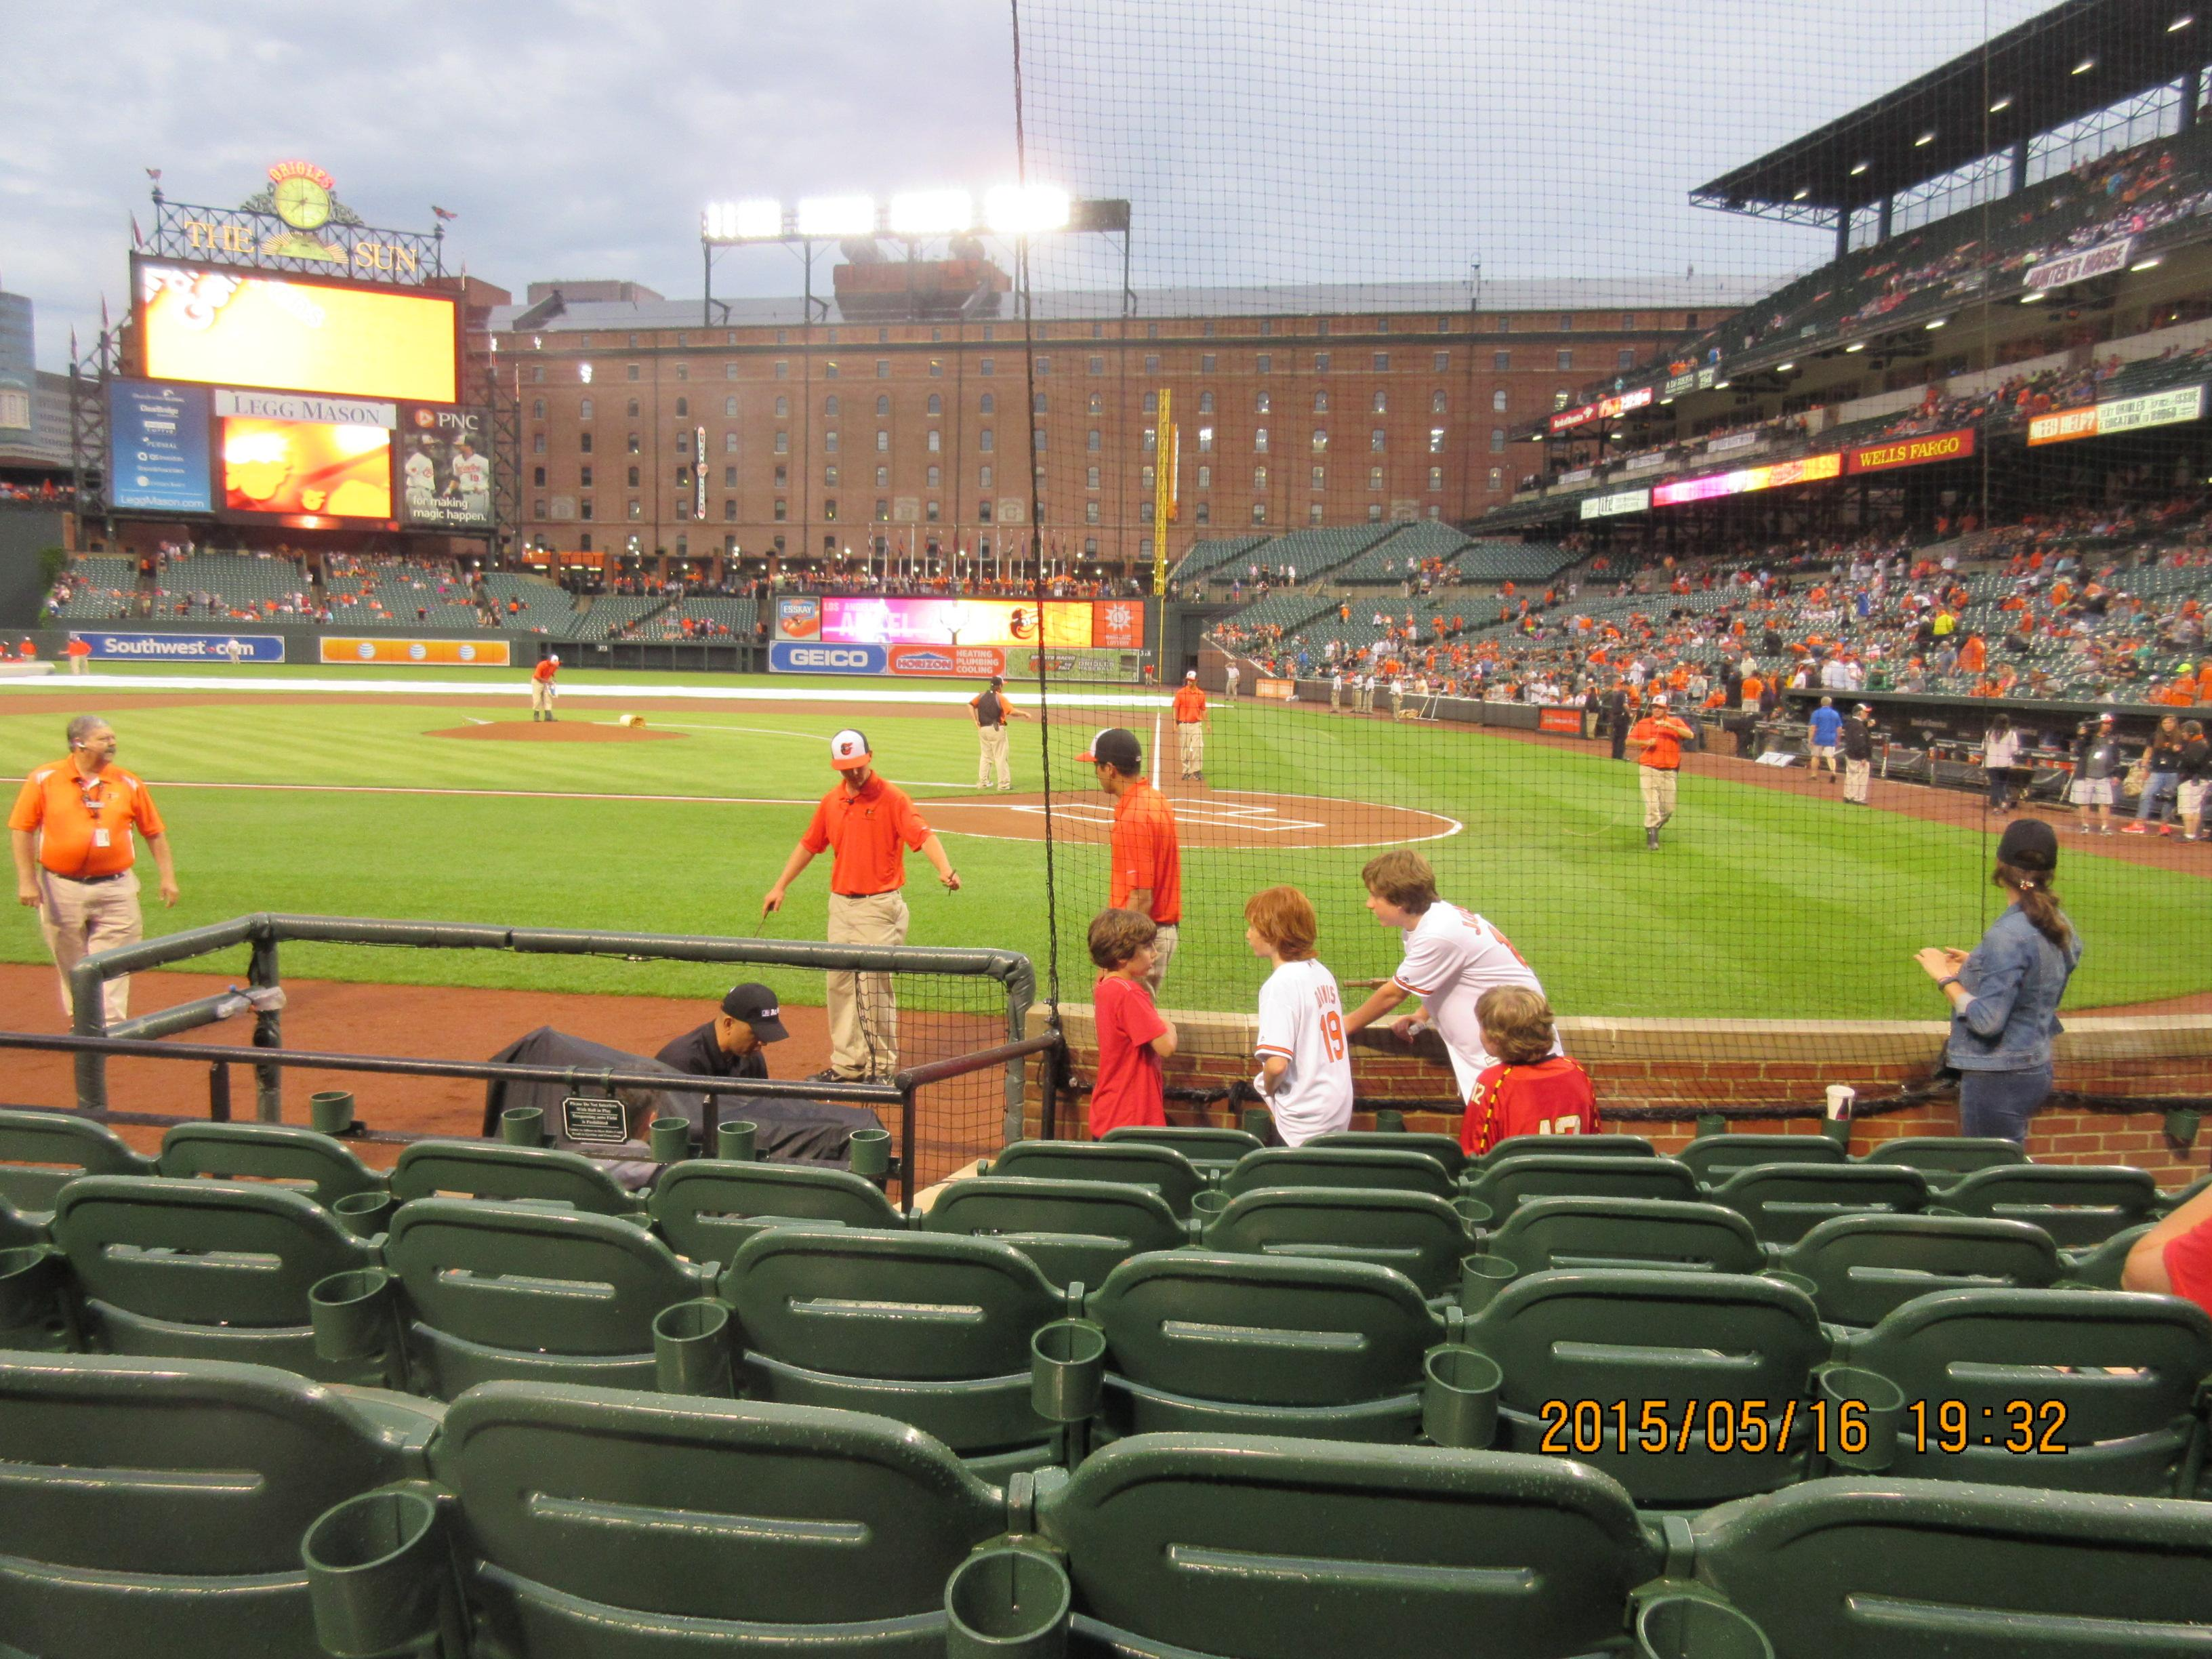 Oriole Park at Camden Yards Section 46 Row 5 Seat 8